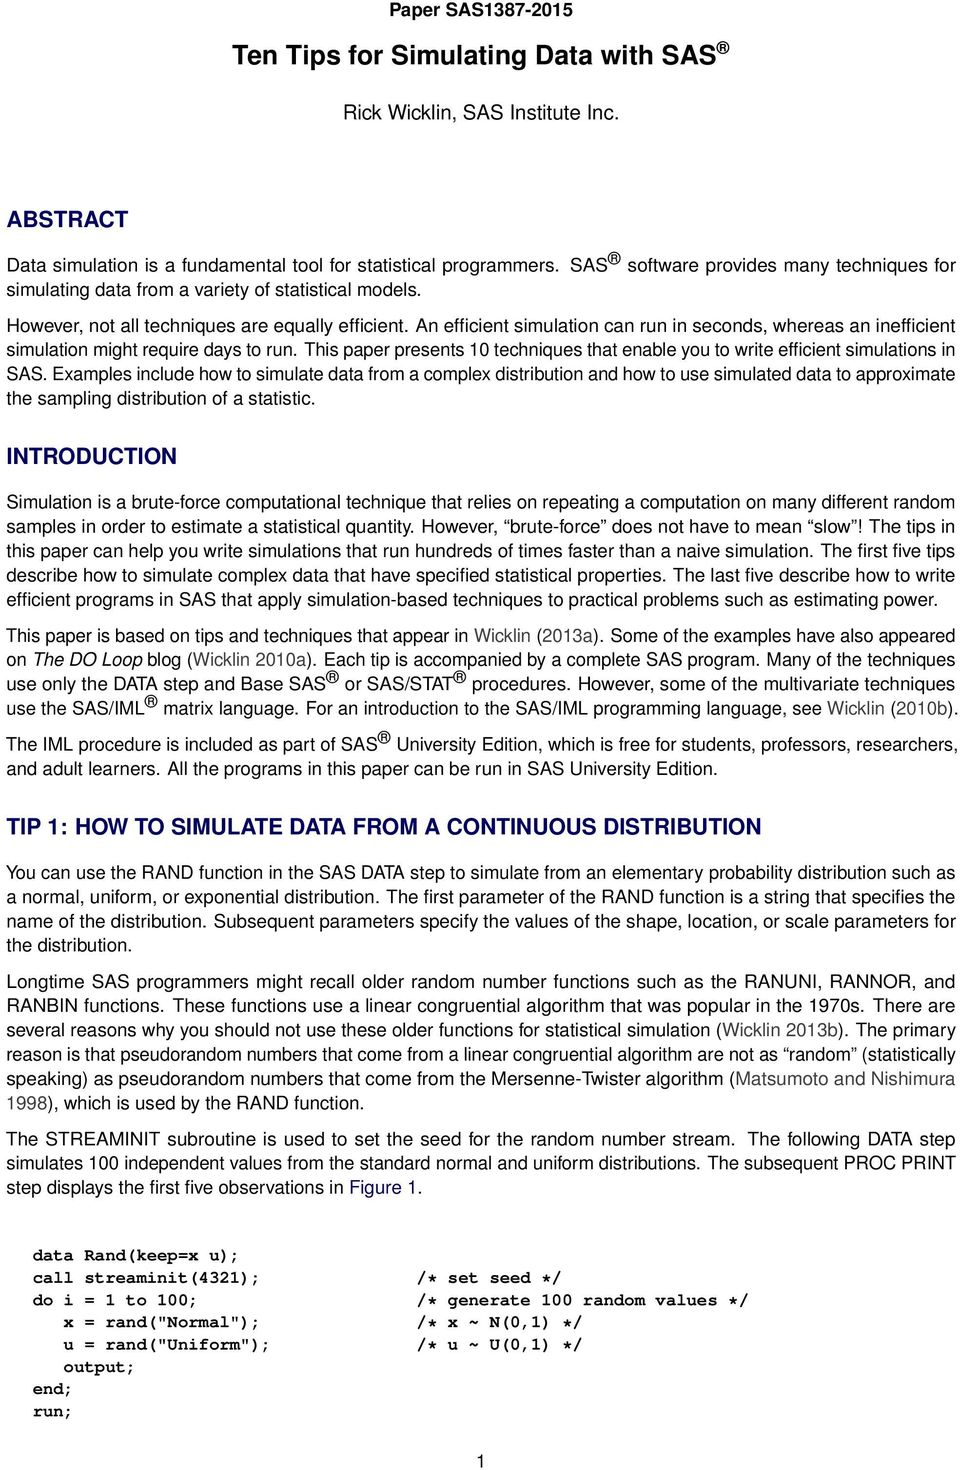 Ten Tips for Simulating Data with SAS - PDF